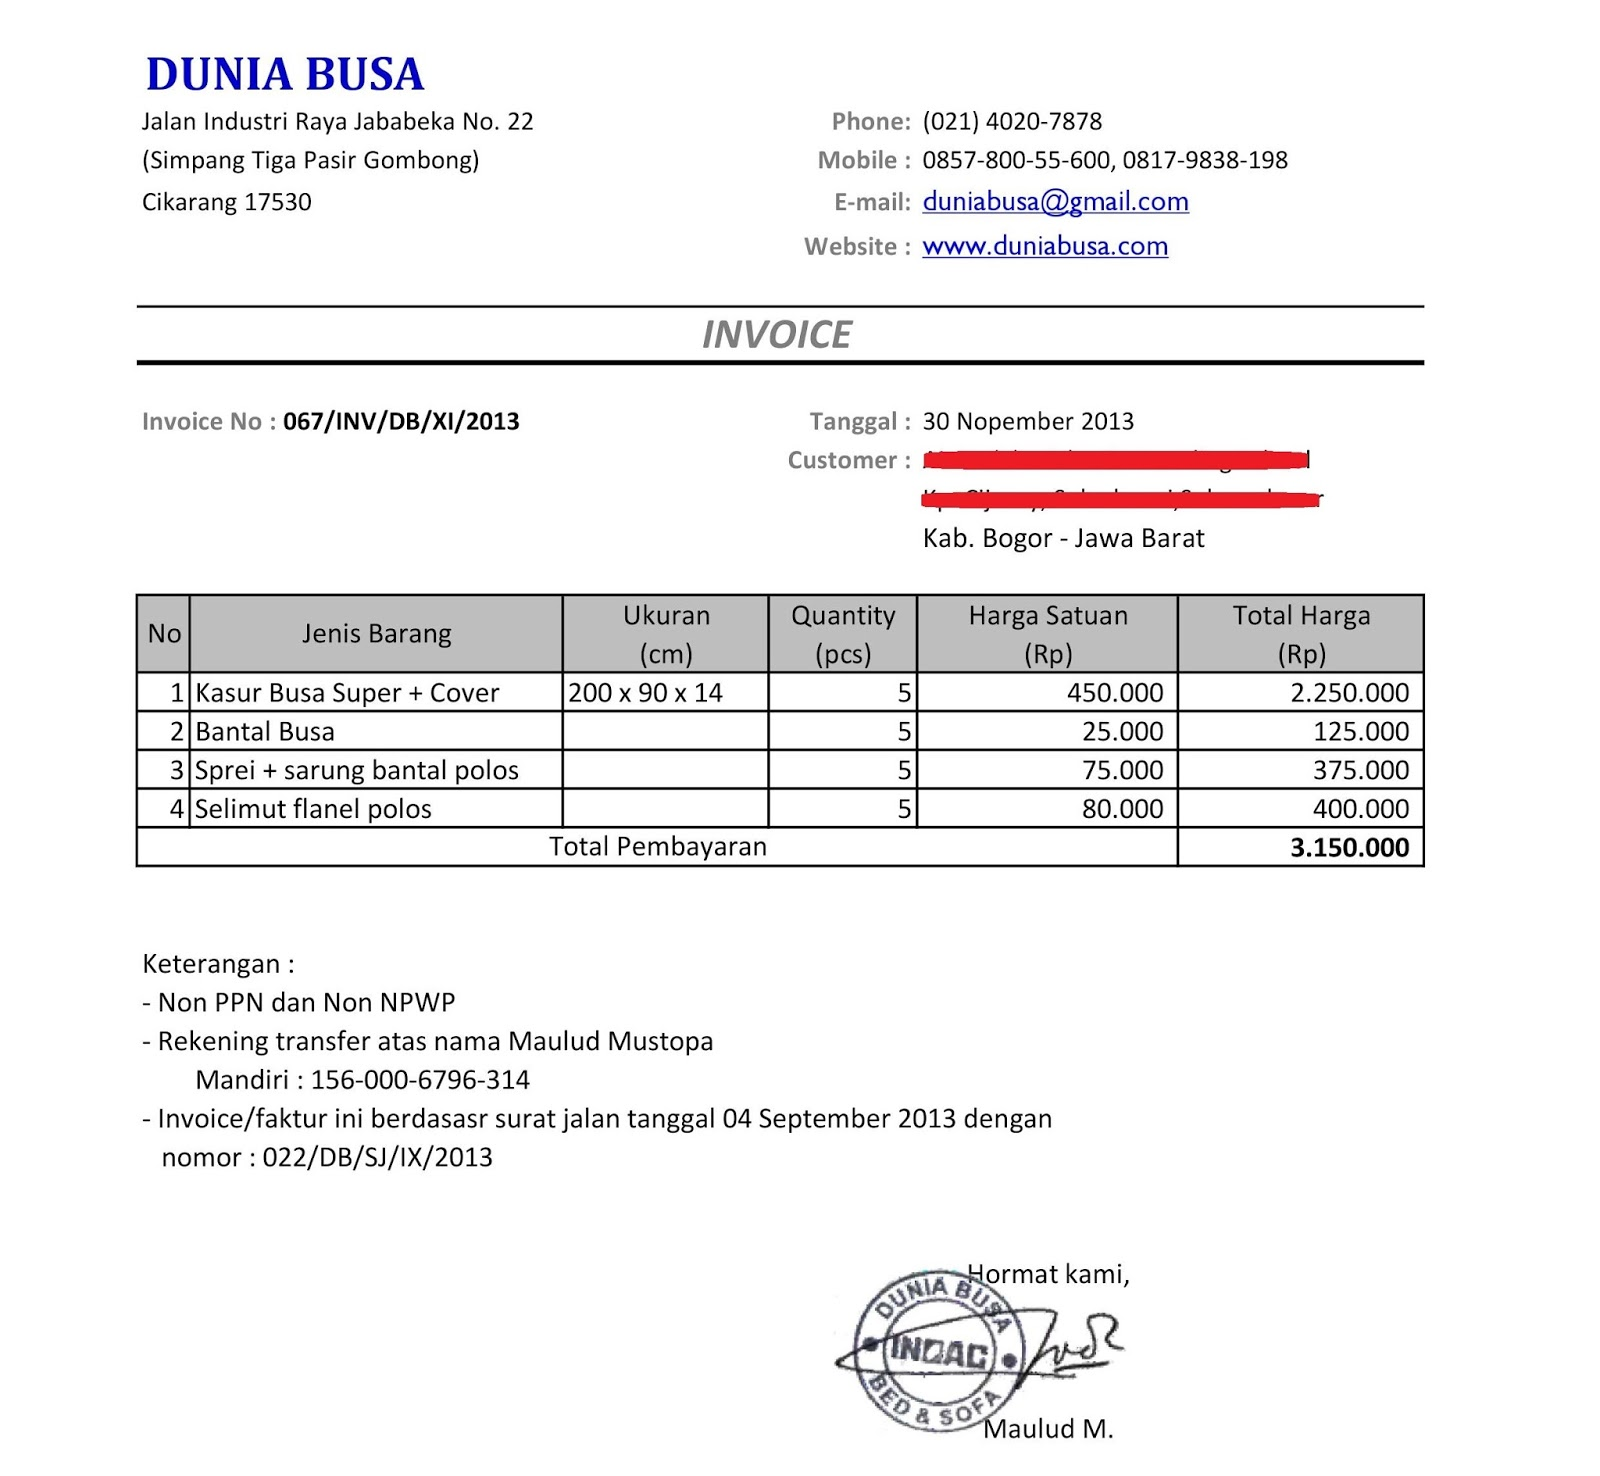 Modaoxus  Winning Free Invoice Online  Create Invoice Online  Invoice Template  With Fascinating Contoh Format Invoice Atau Surat Tagihan  Brankas Arsip  Free Invoice Online With Easy On The Eye Receipt Slip Sample Also Sample Of House Rent Receipt In Addition Receipt Account And Make Fake Receipts Online As Well As Sample Receipt For Rent Payment Additionally Simple Rent Receipt Format From Sklepco With Modaoxus  Fascinating Free Invoice Online  Create Invoice Online  Invoice Template  With Easy On The Eye Contoh Format Invoice Atau Surat Tagihan  Brankas Arsip  Free Invoice Online And Winning Receipt Slip Sample Also Sample Of House Rent Receipt In Addition Receipt Account From Sklepco